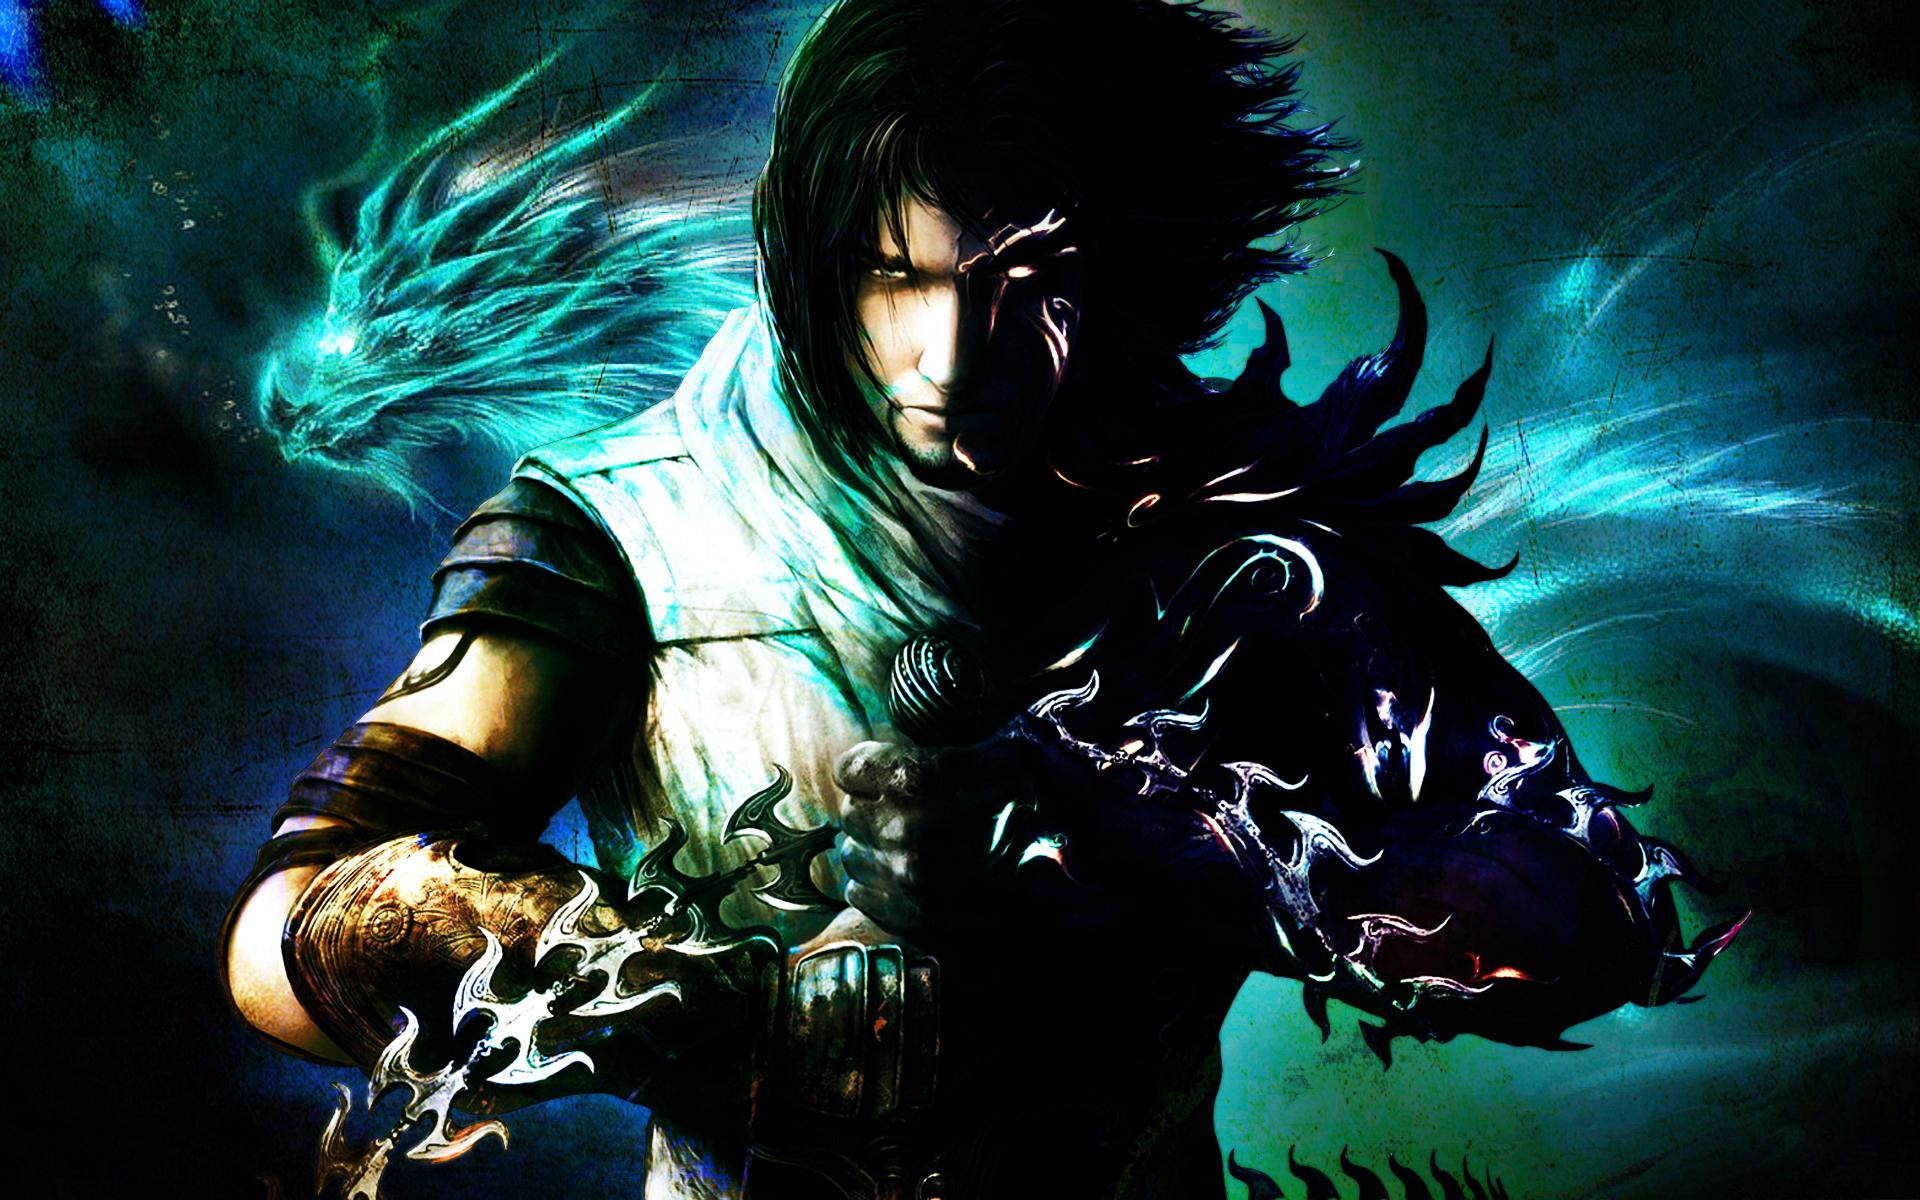 Prince Of Persia The Two Thrones Wallpaper By Nakshatras1 On